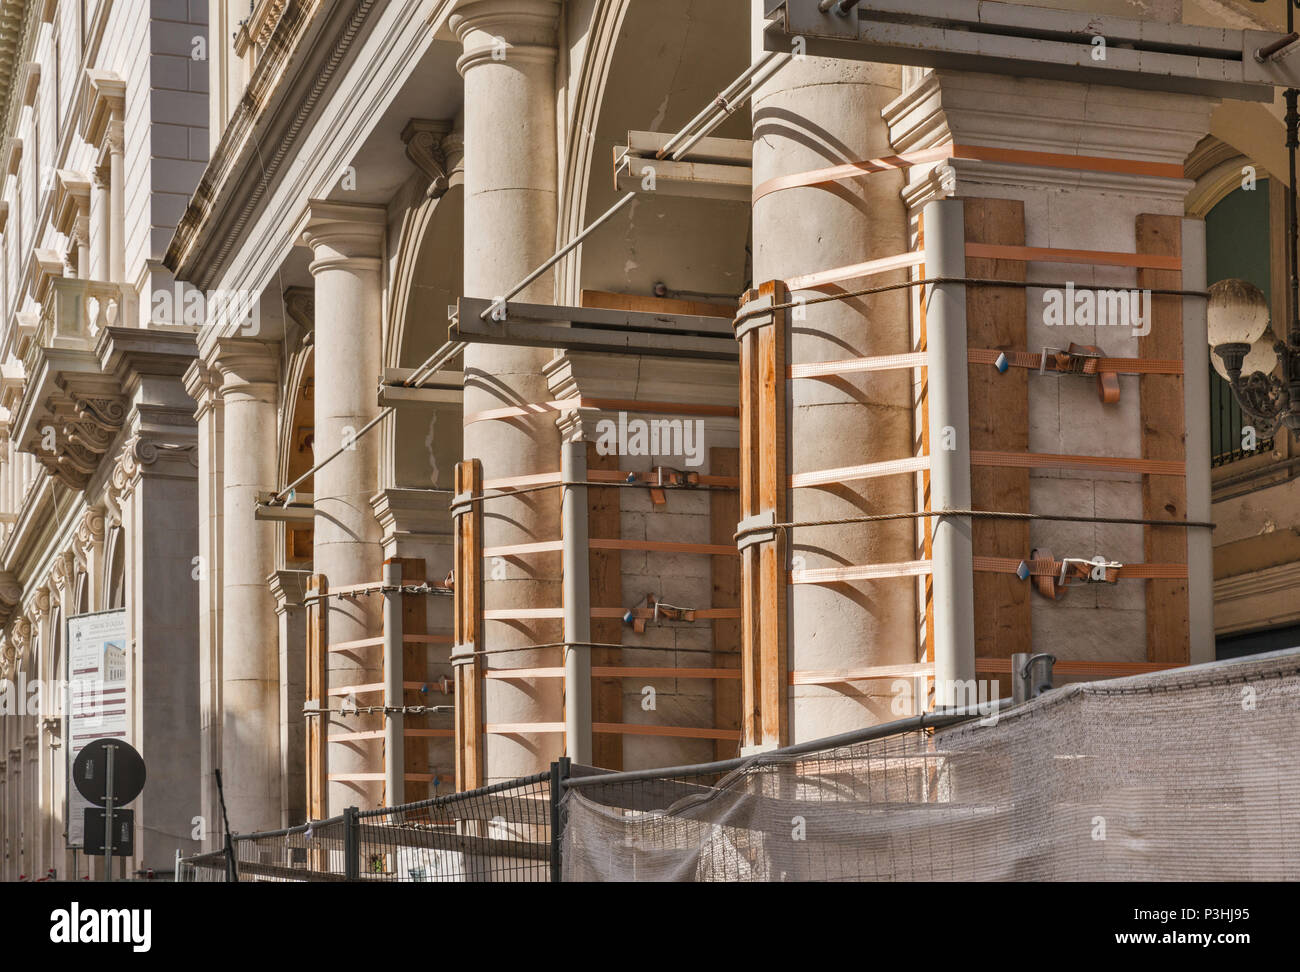 Band clamps protecting Chamber of Commerce, building damaged in 2009 L'Aquila Earthquake, 2018 view, historic center of L'Aquila, Abruzzo, Italy - Stock Image